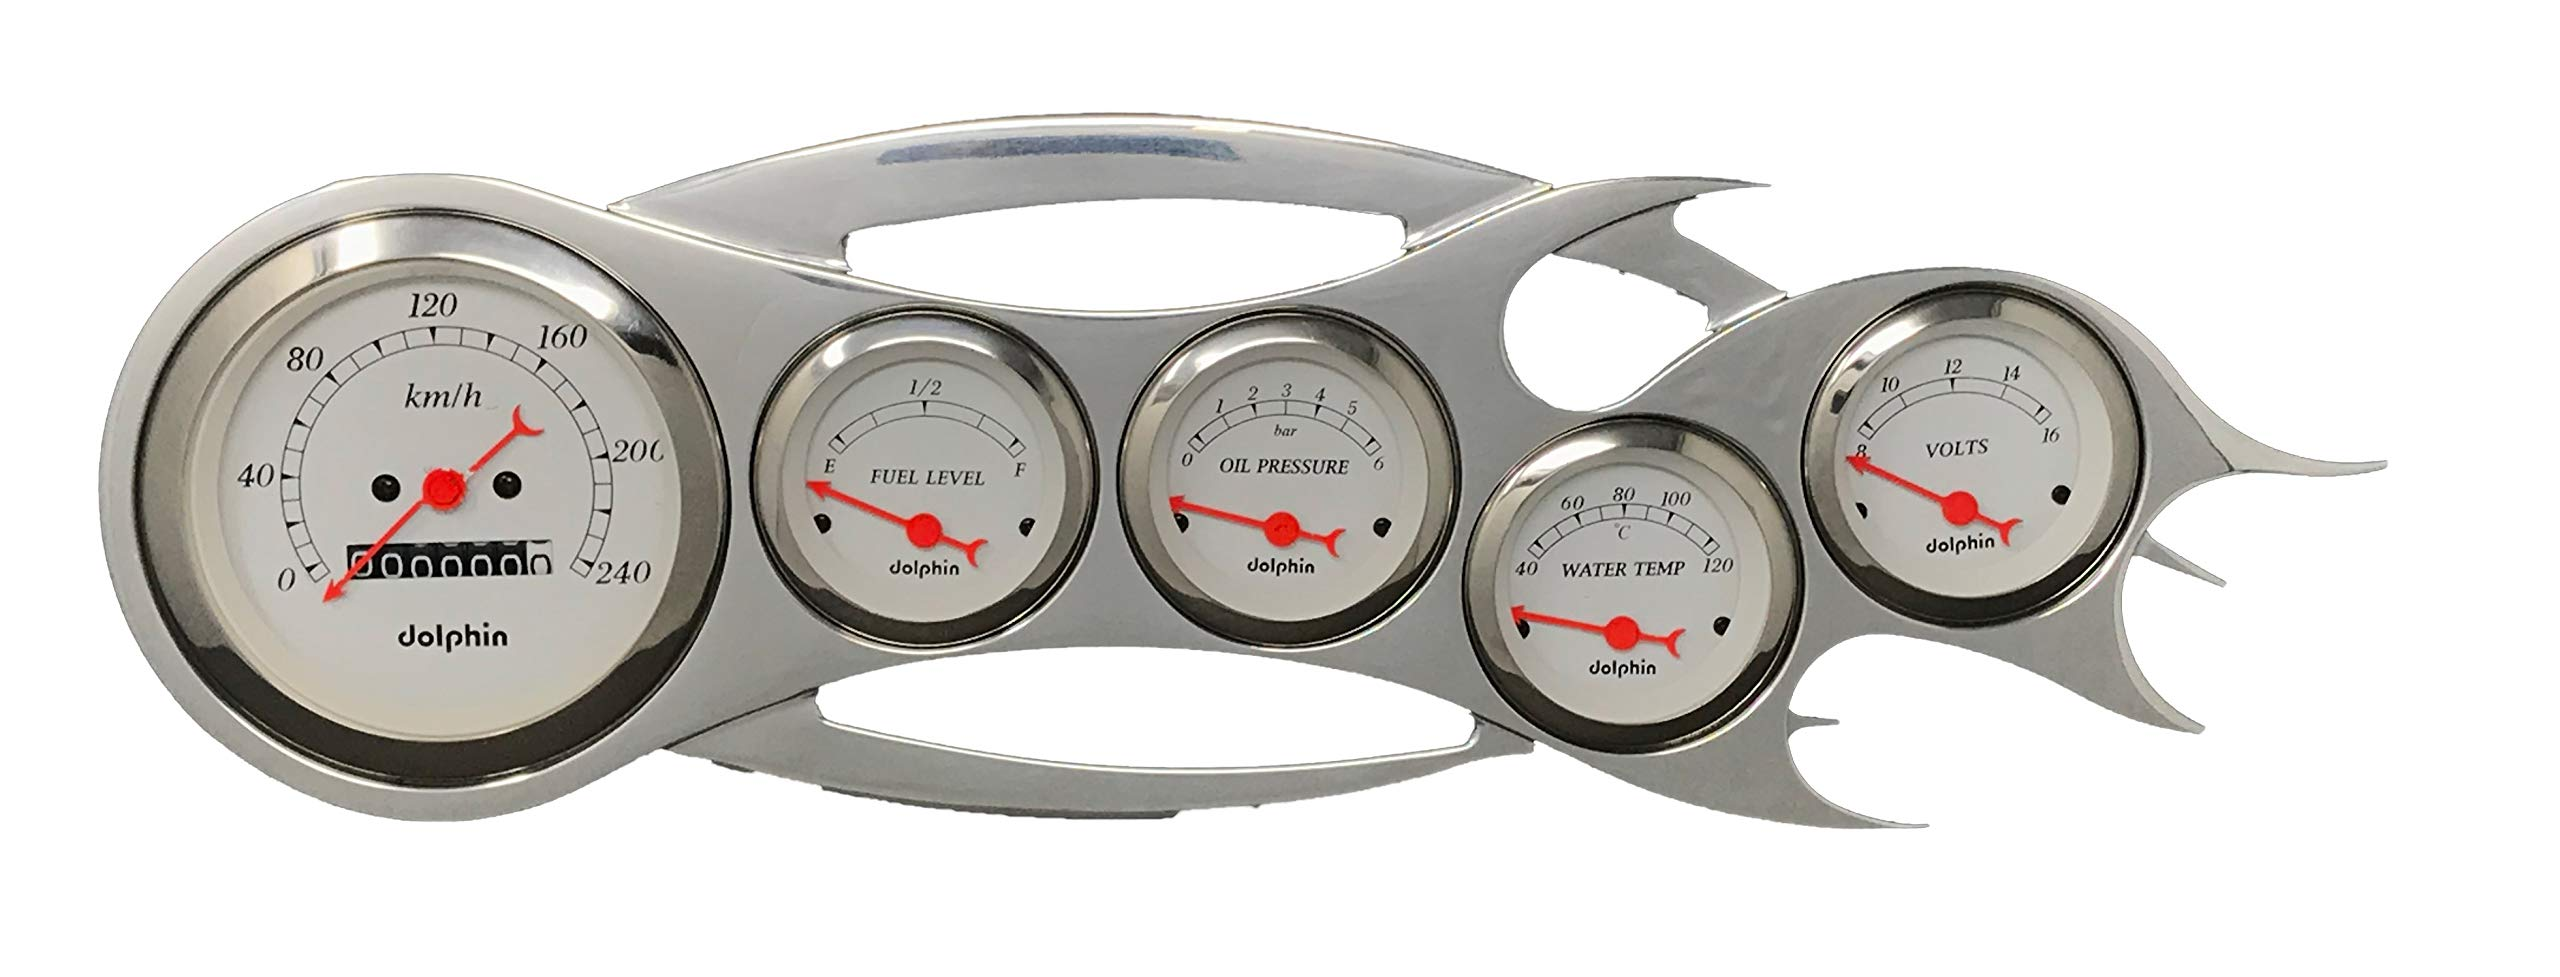 Dolphin Gauges Universal - 5 Gauge Dash Cluster Panel - Metric - Mechanical - White by Dolphin Gauges